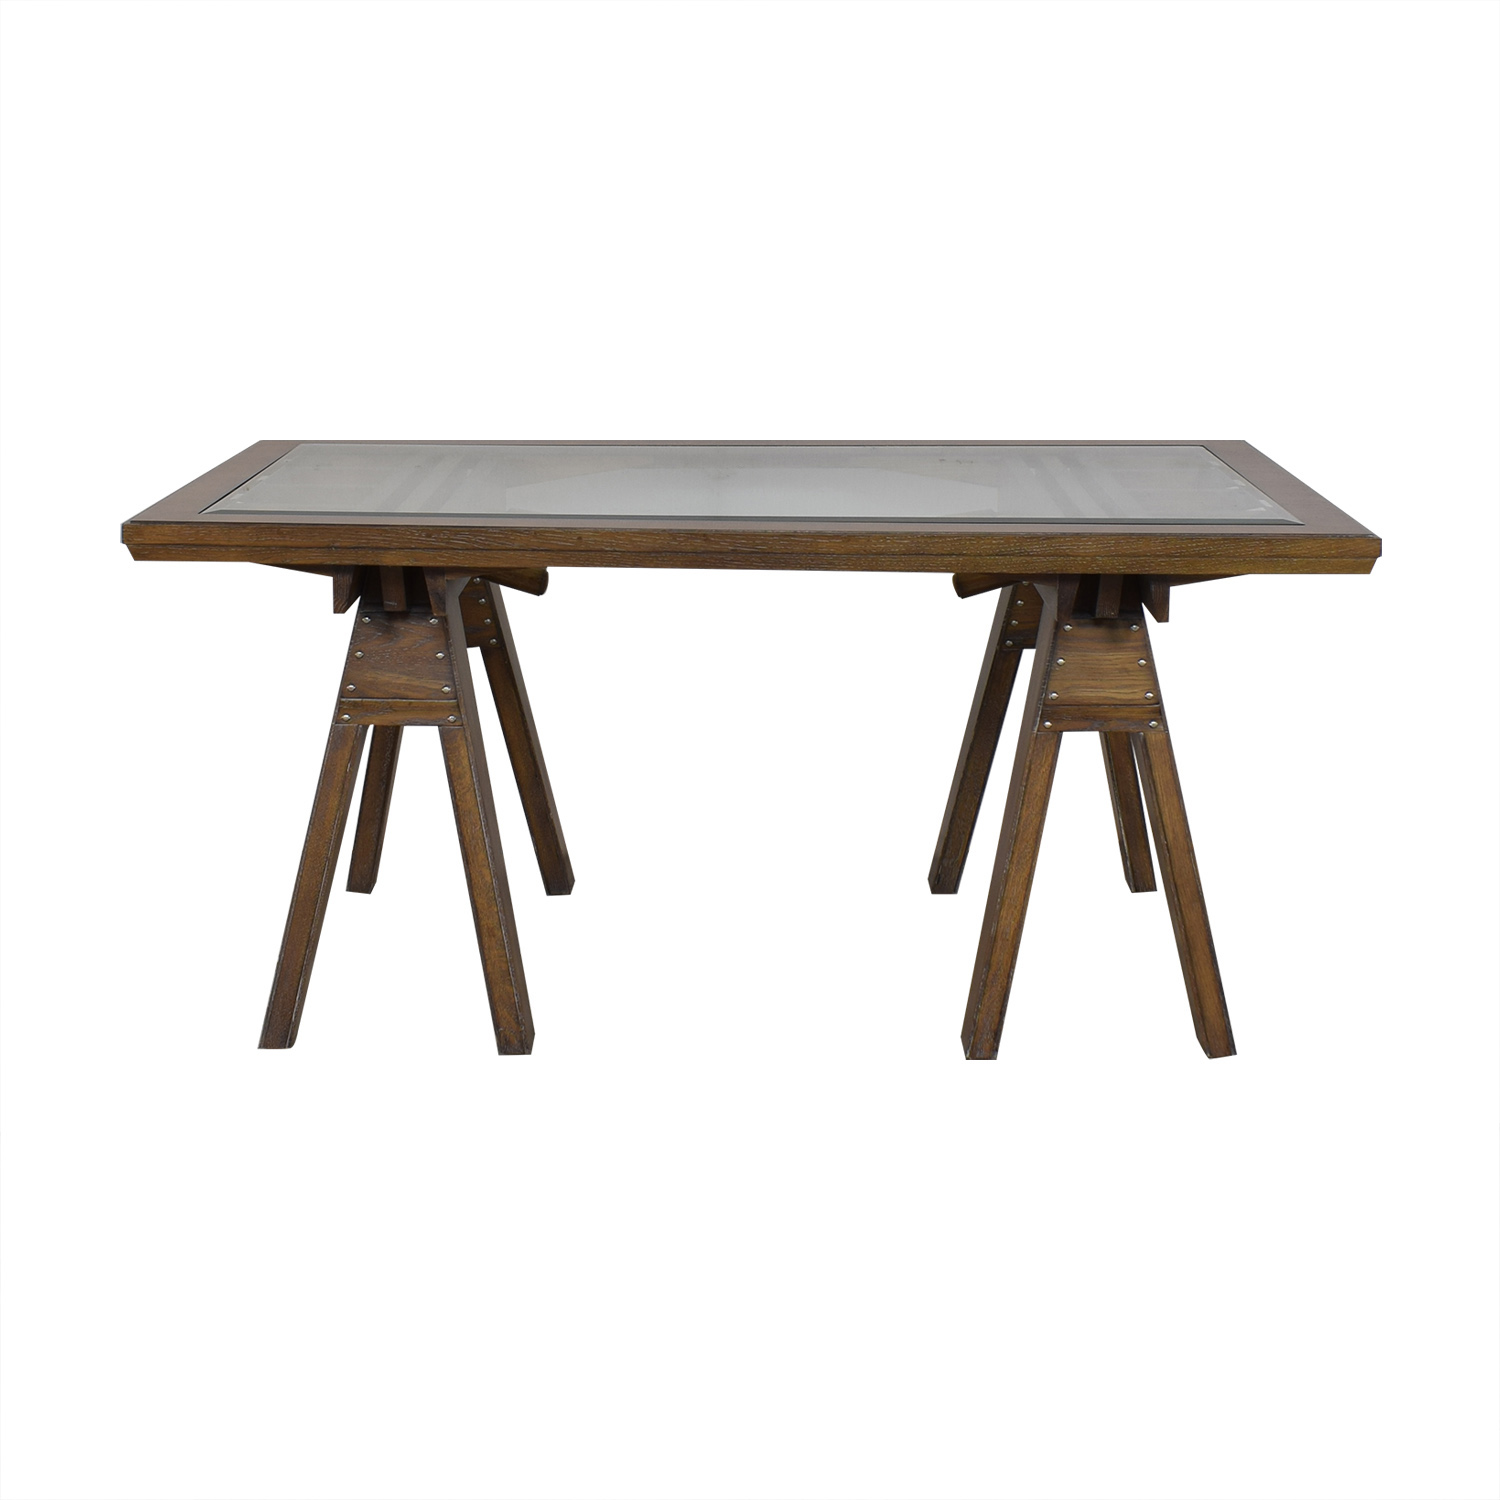 Thomas O'Brien Thomas O'Brien Industrial Dining Table for sale